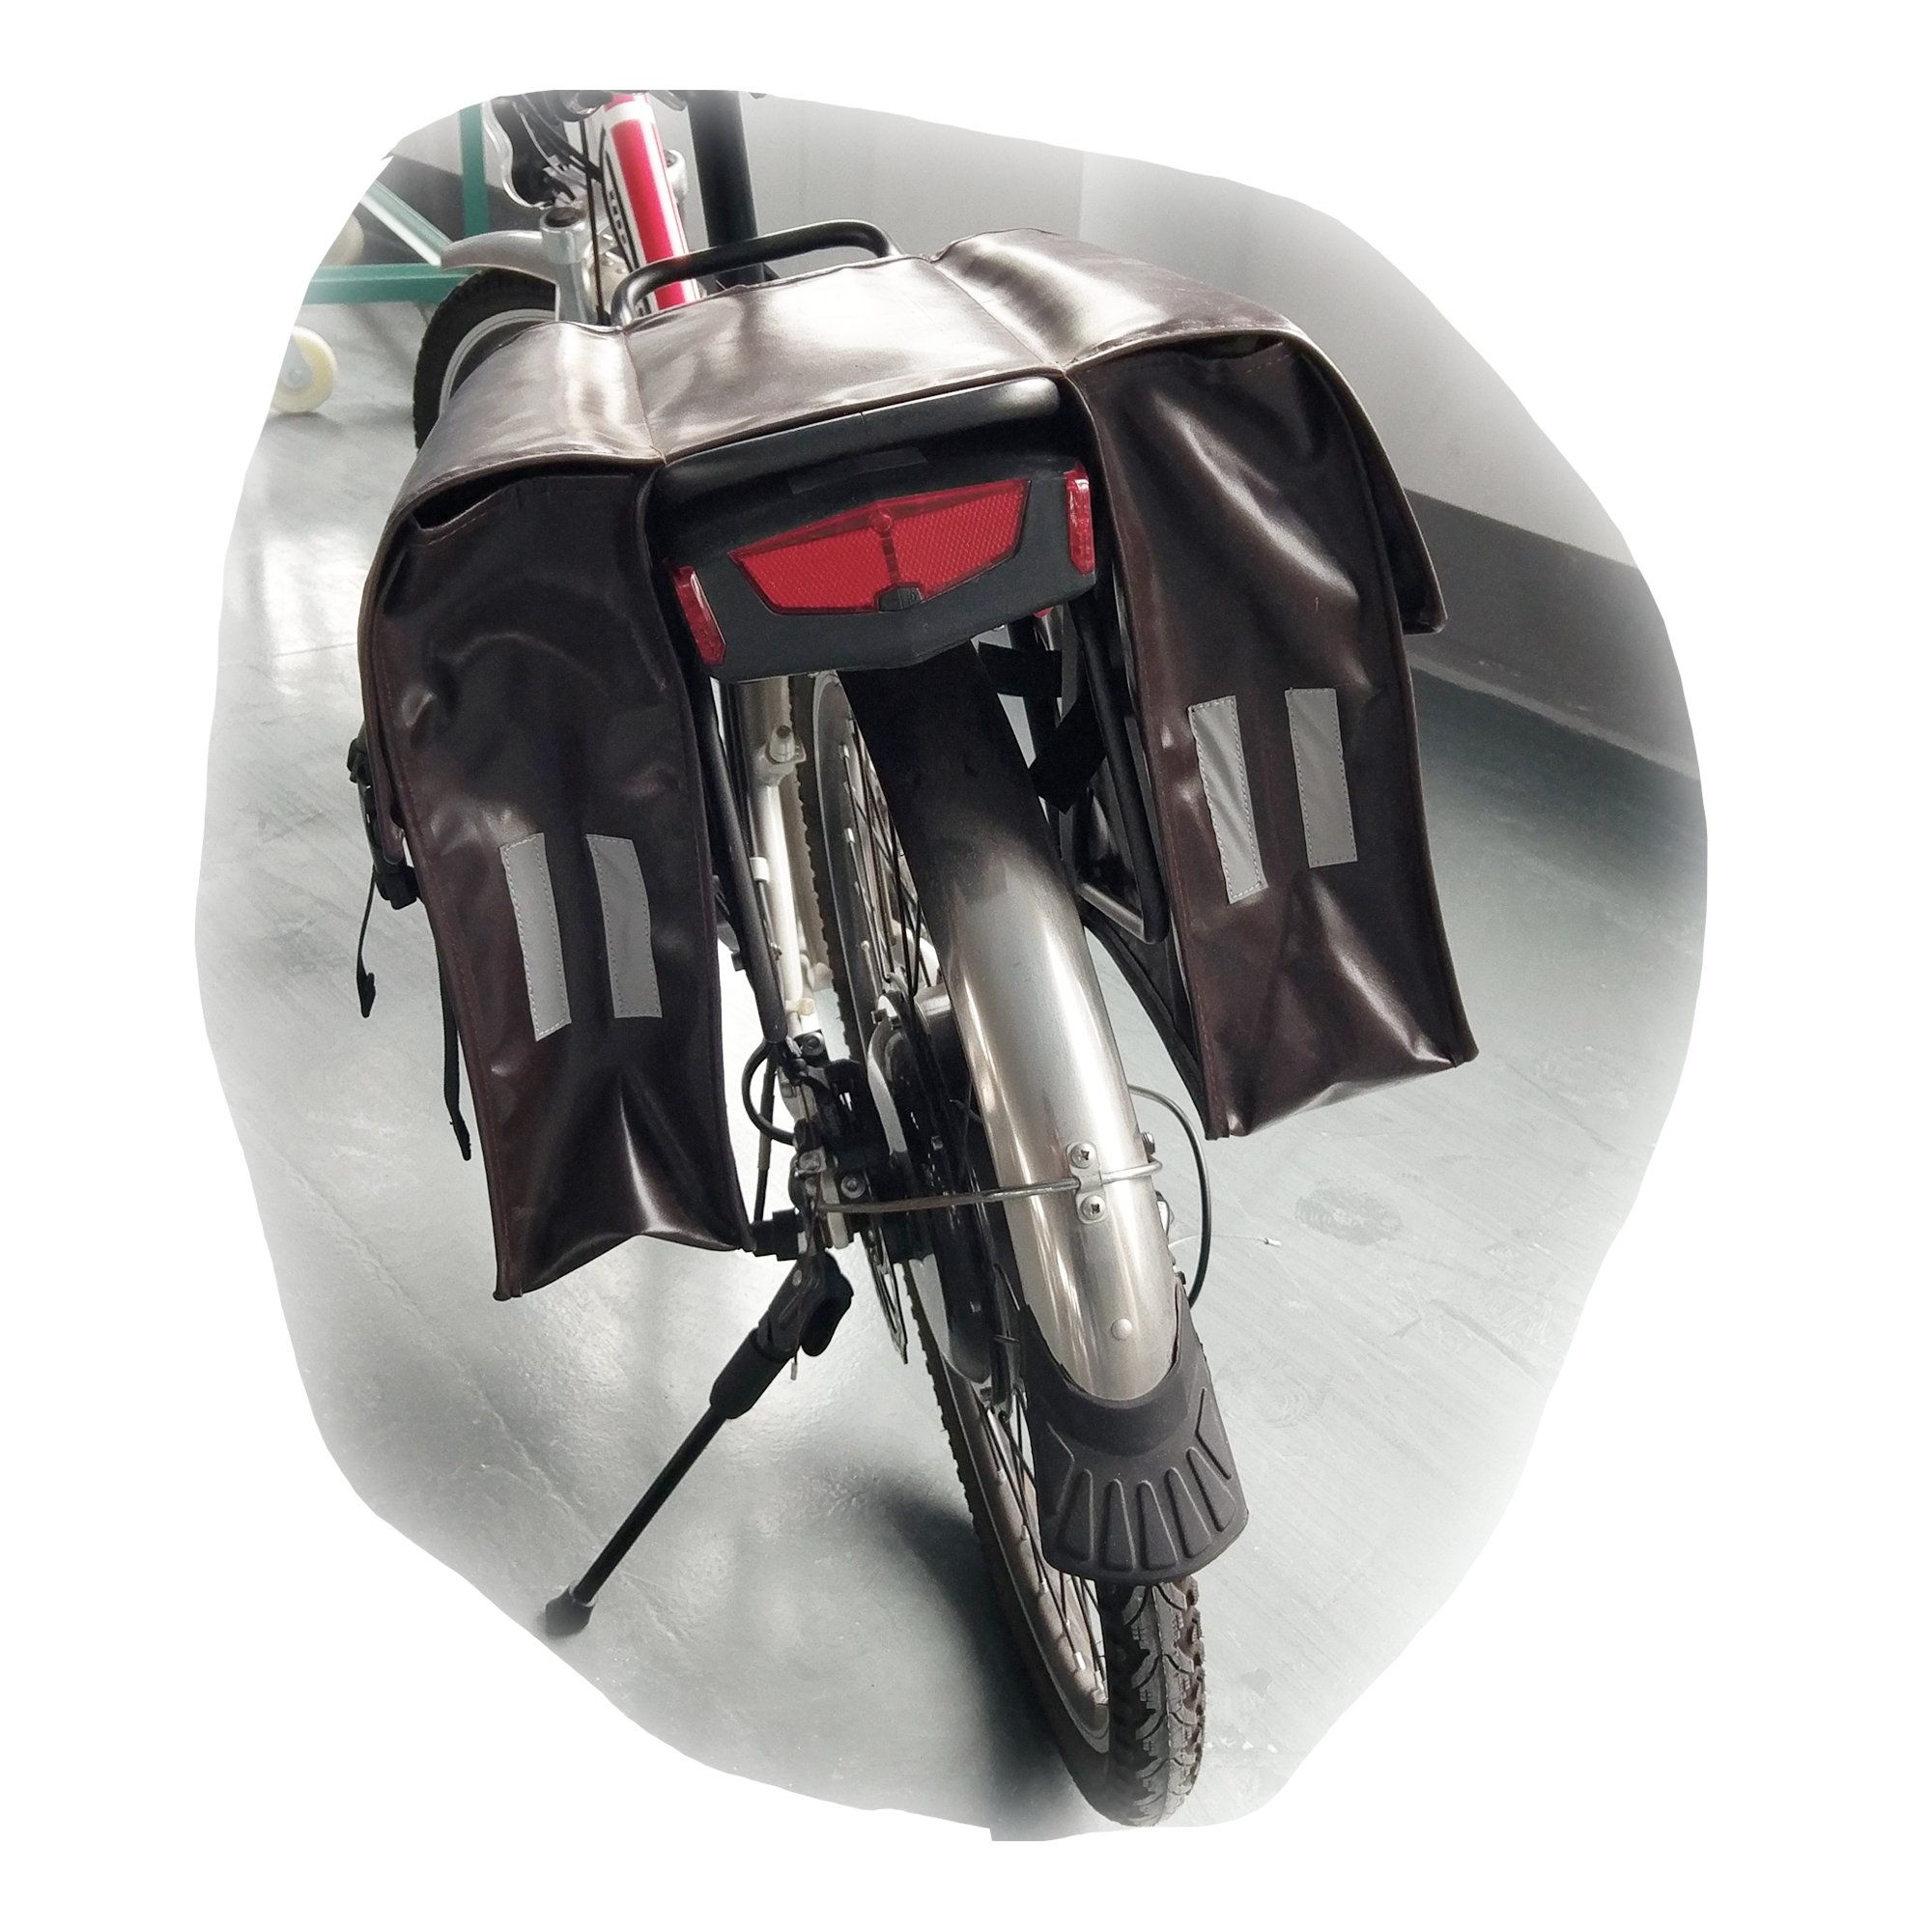 Cnebikes Brown Waterproof Bicycle Rear Seat Carrier Bag Double Pannier Bag Travel Camping Bag Leather Bag